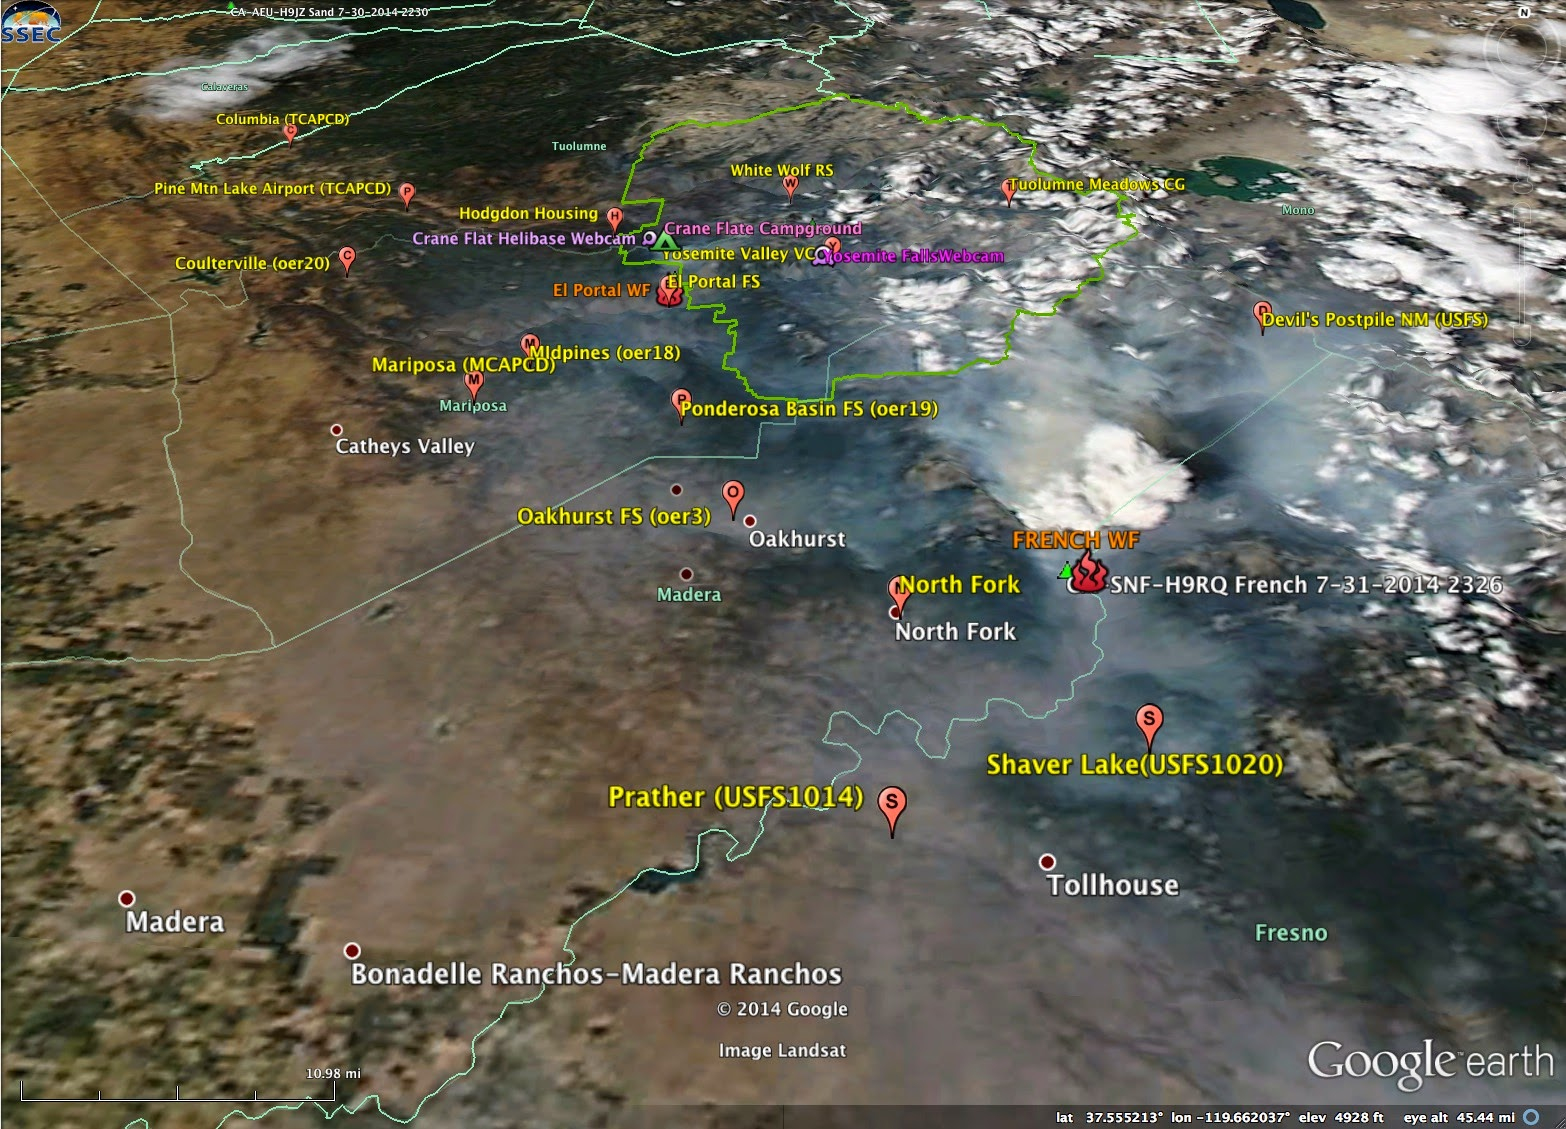 at least 4000 acres have been consumed generating over 2000 tons of smoke on that fire since then